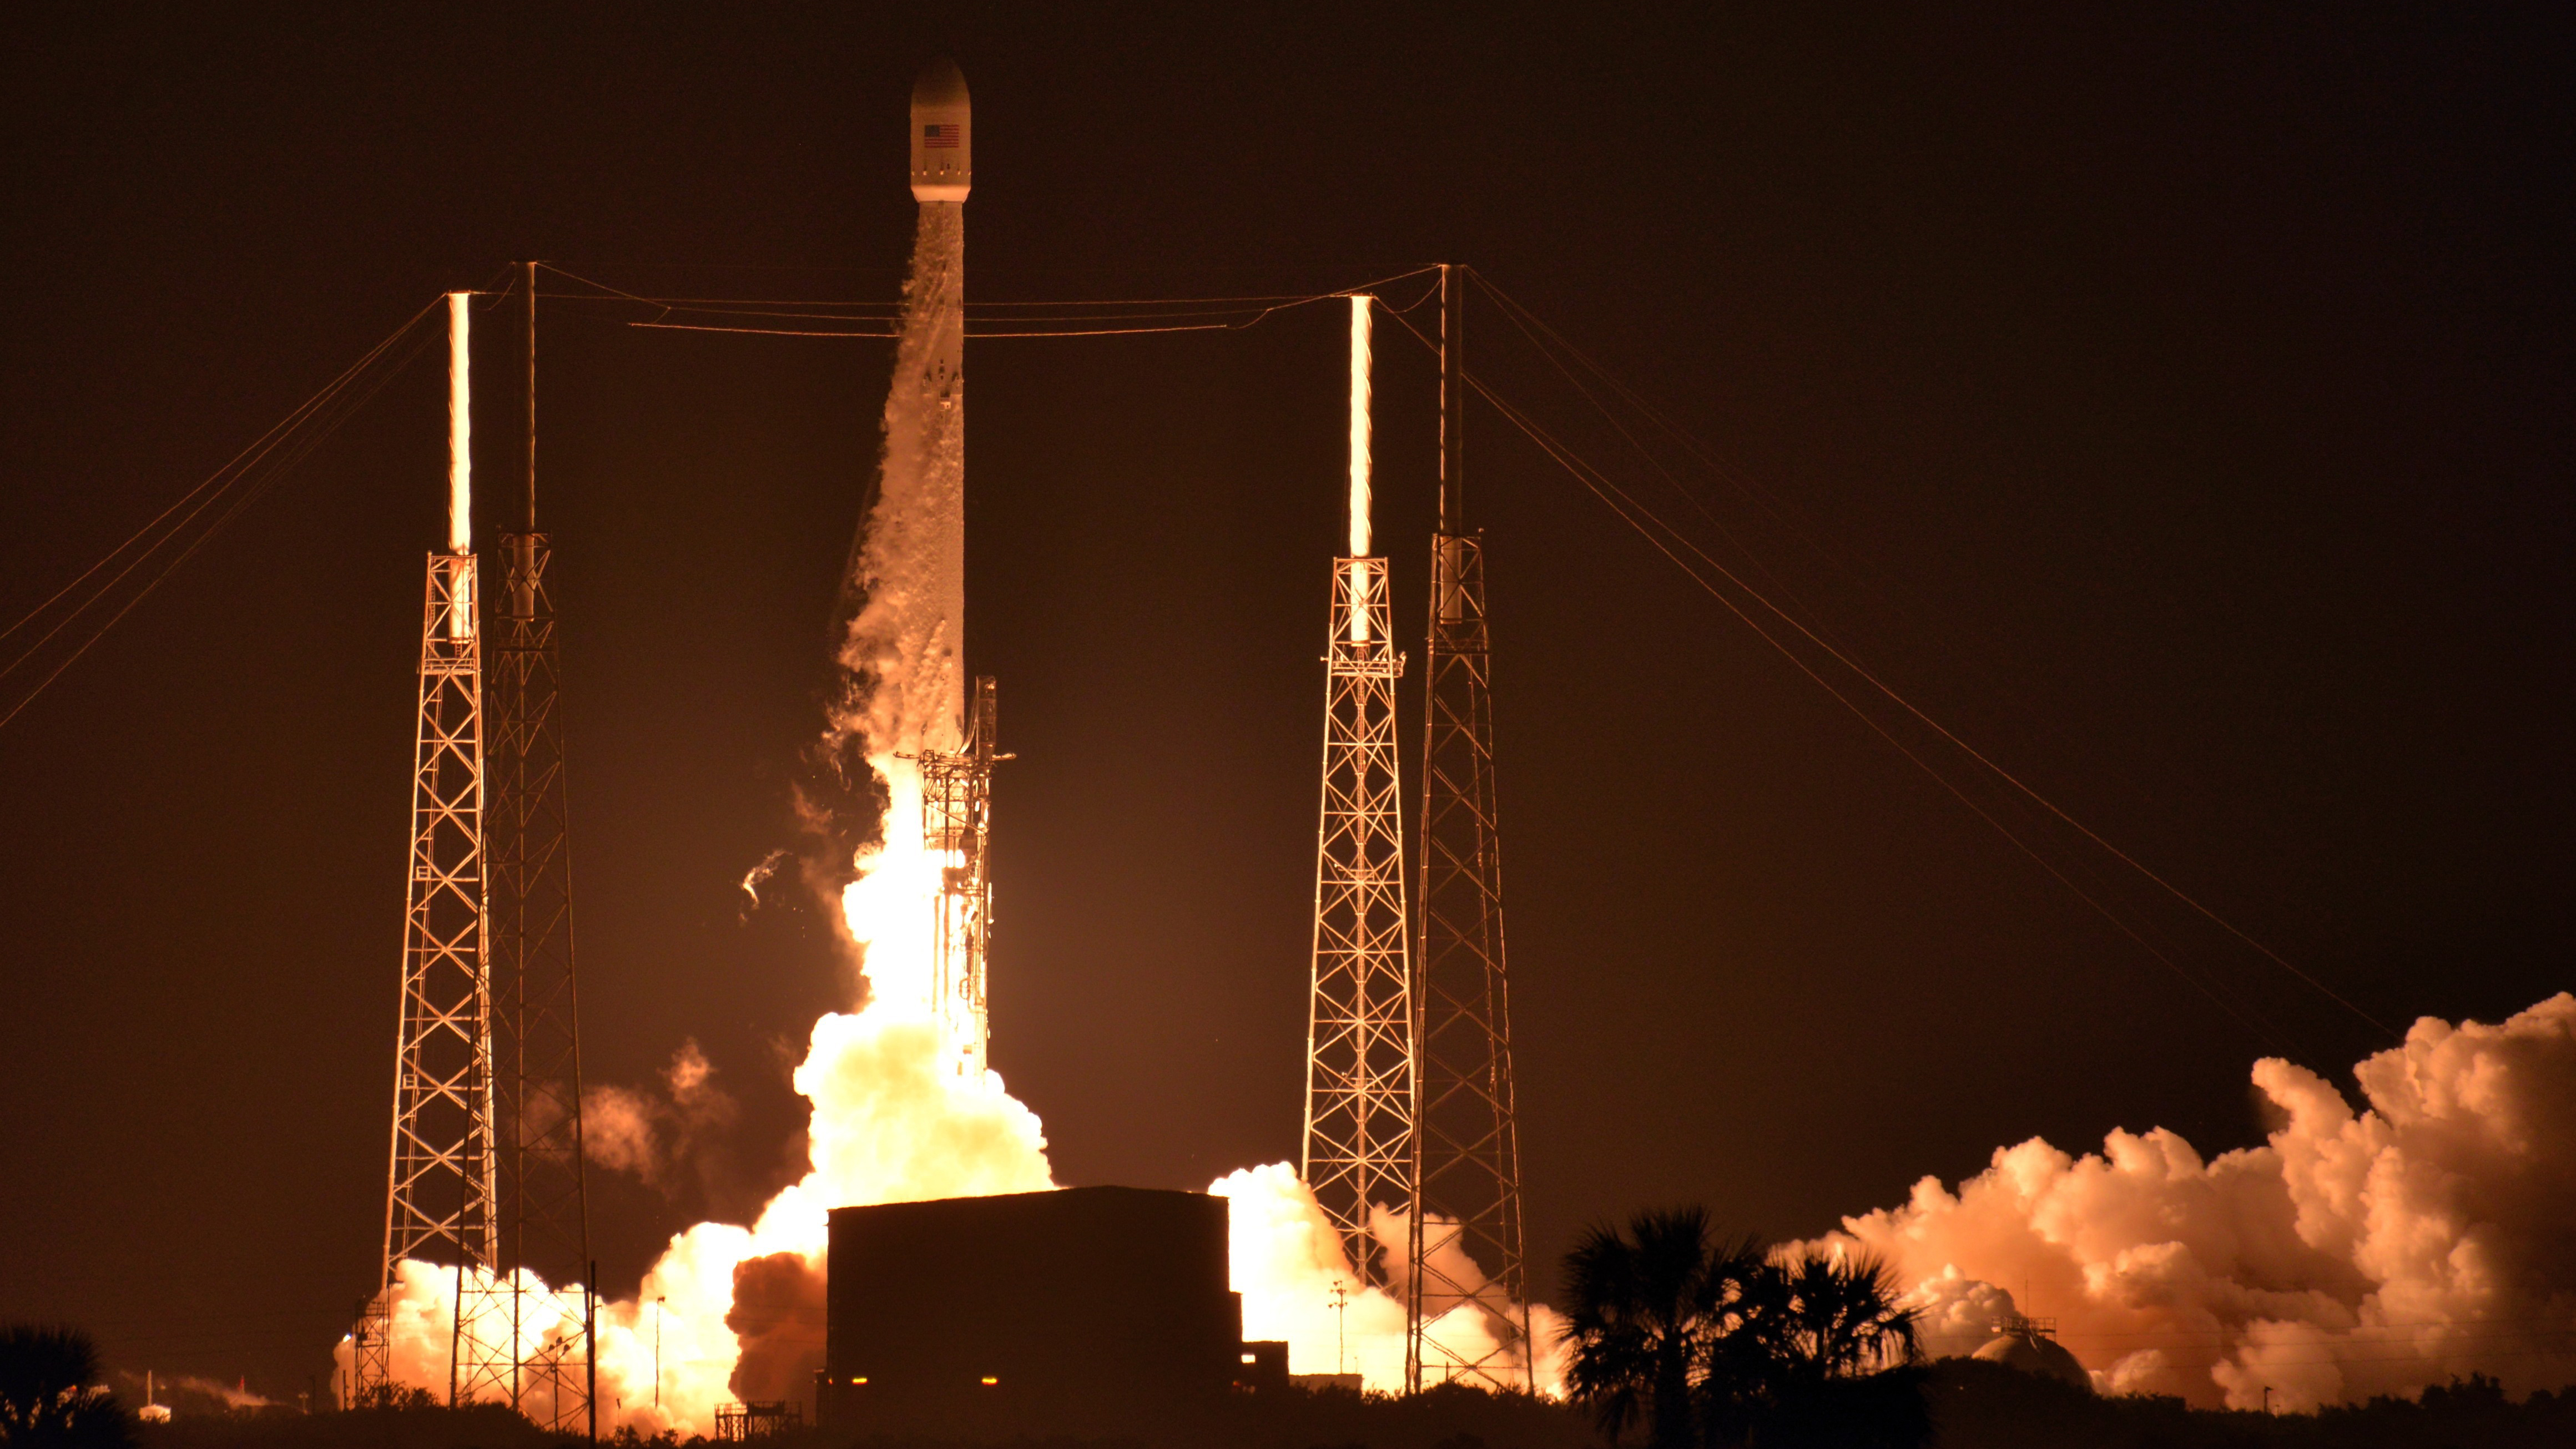 SpaceX to launch first rocket since Falcon 9 explosion